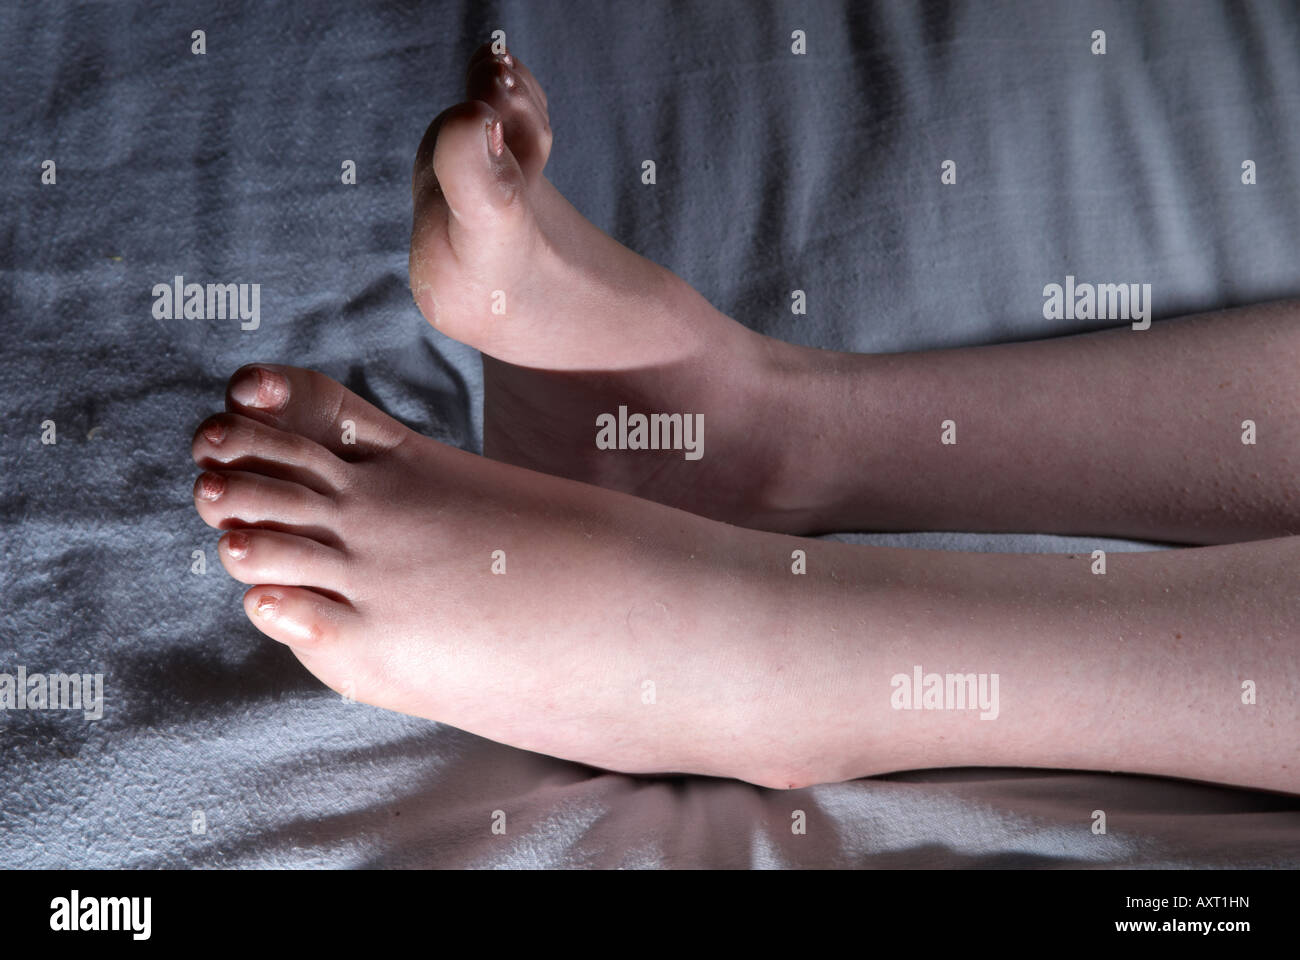 Swollen / puffy feet, toes and ankles of adult female woman after an operation, left foot showing signs of drop - Stock Image